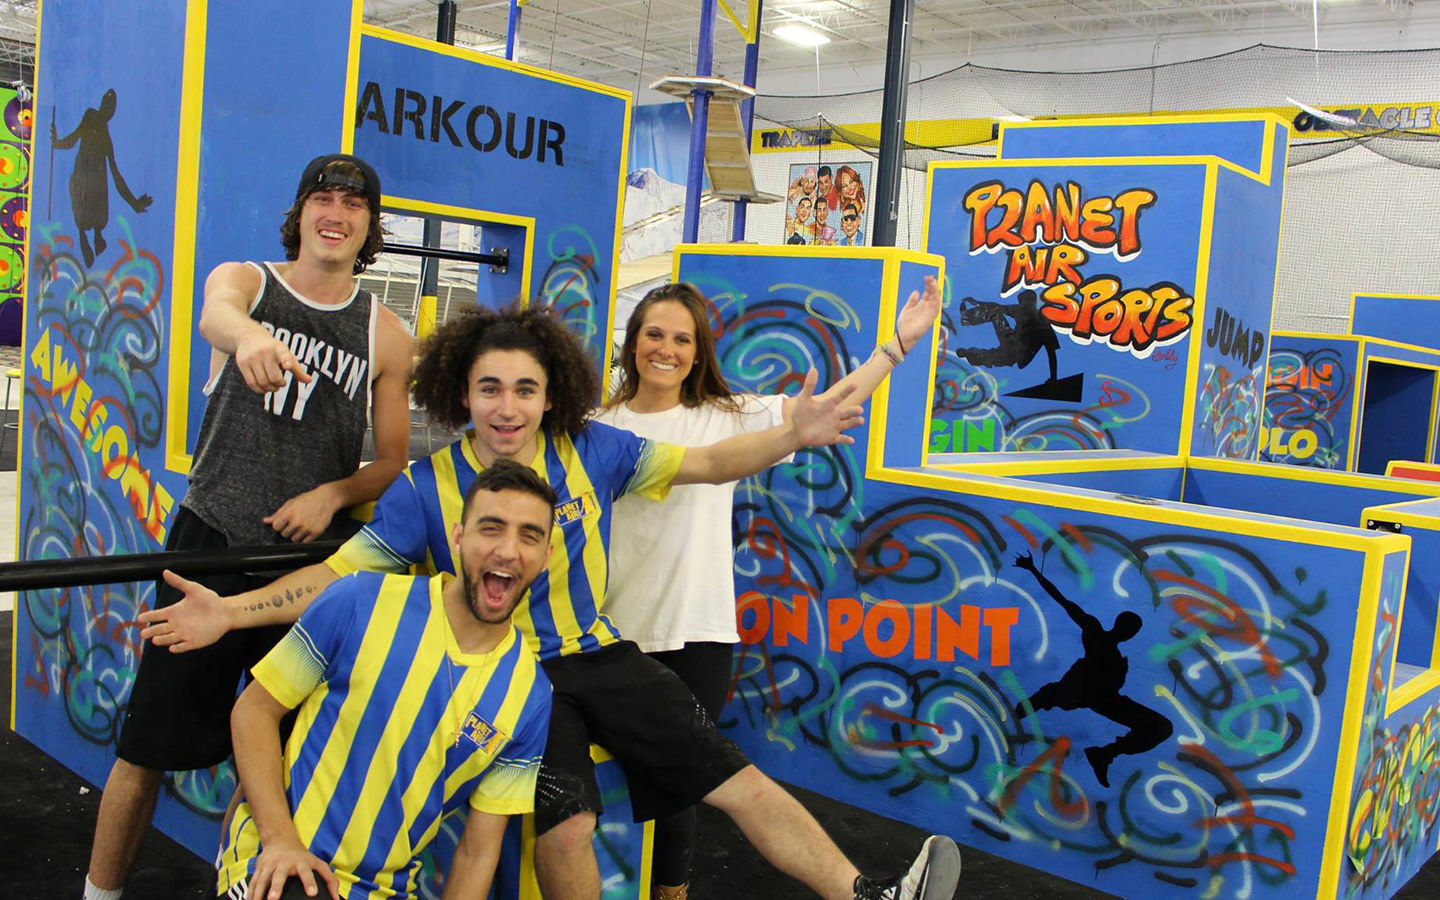 Attraction Planet Air Sports Parkour